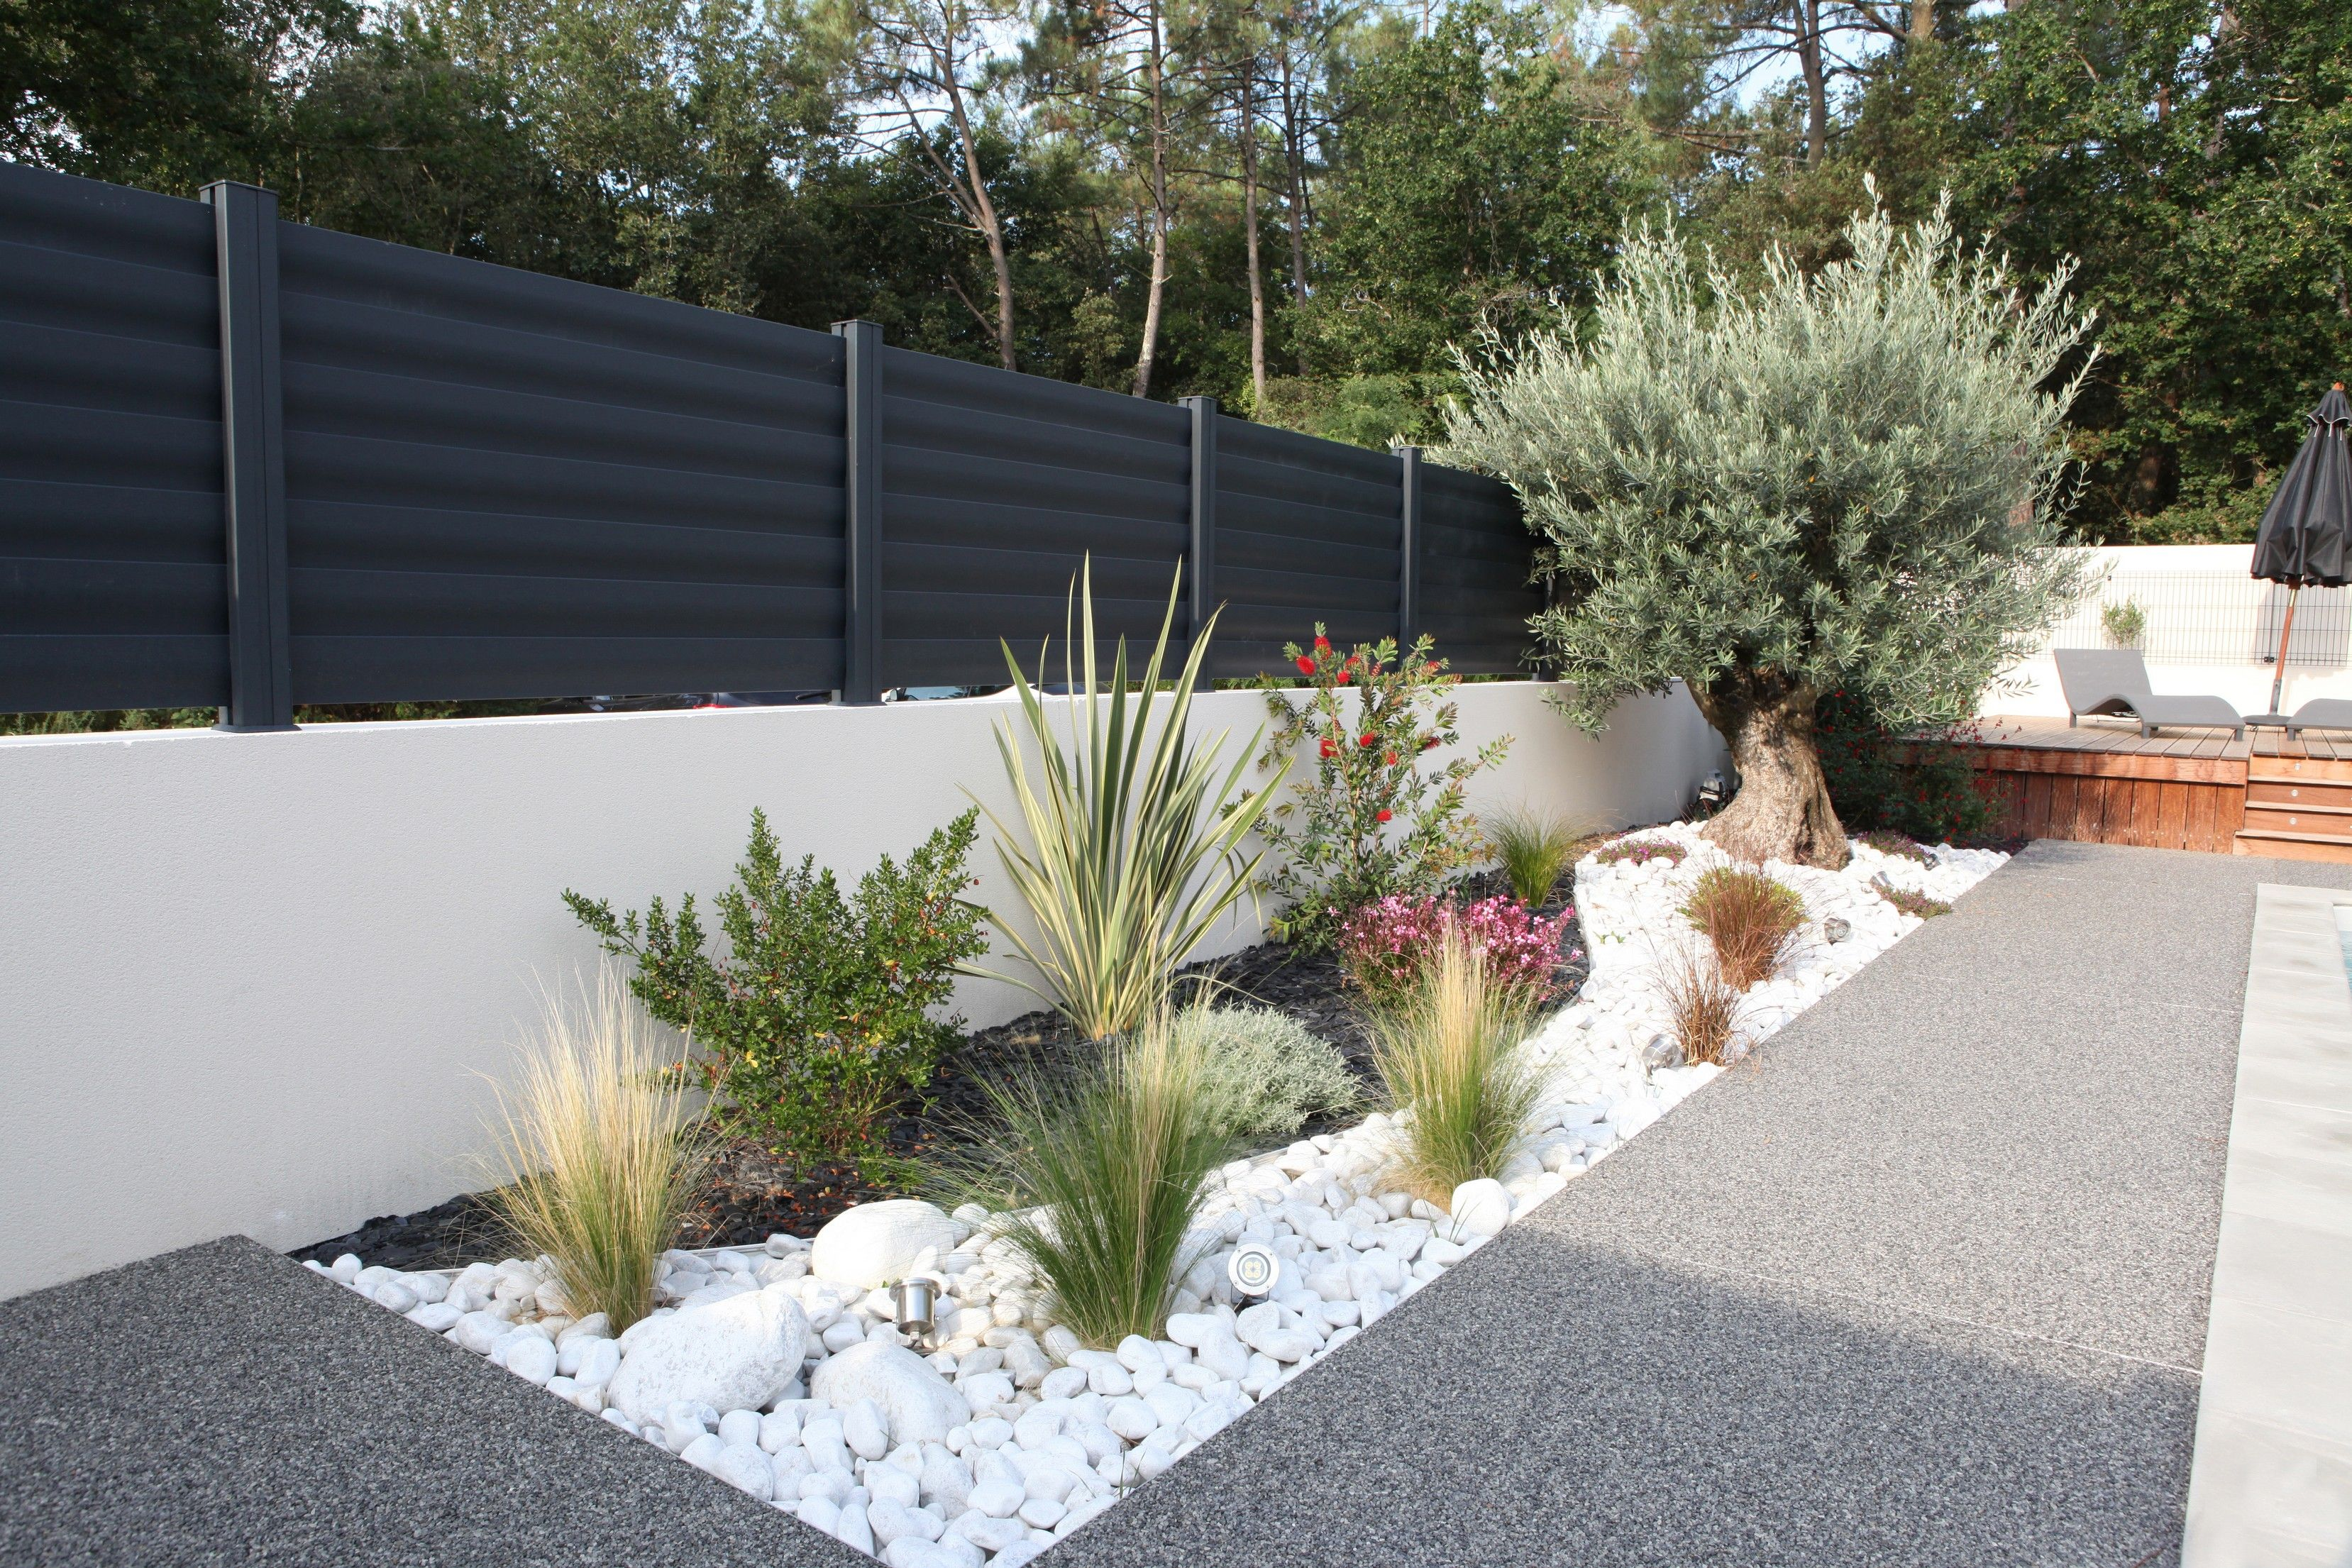 Cl tures aluminium mod le brise vue menuiserie cloturel for Application amenagement jardin